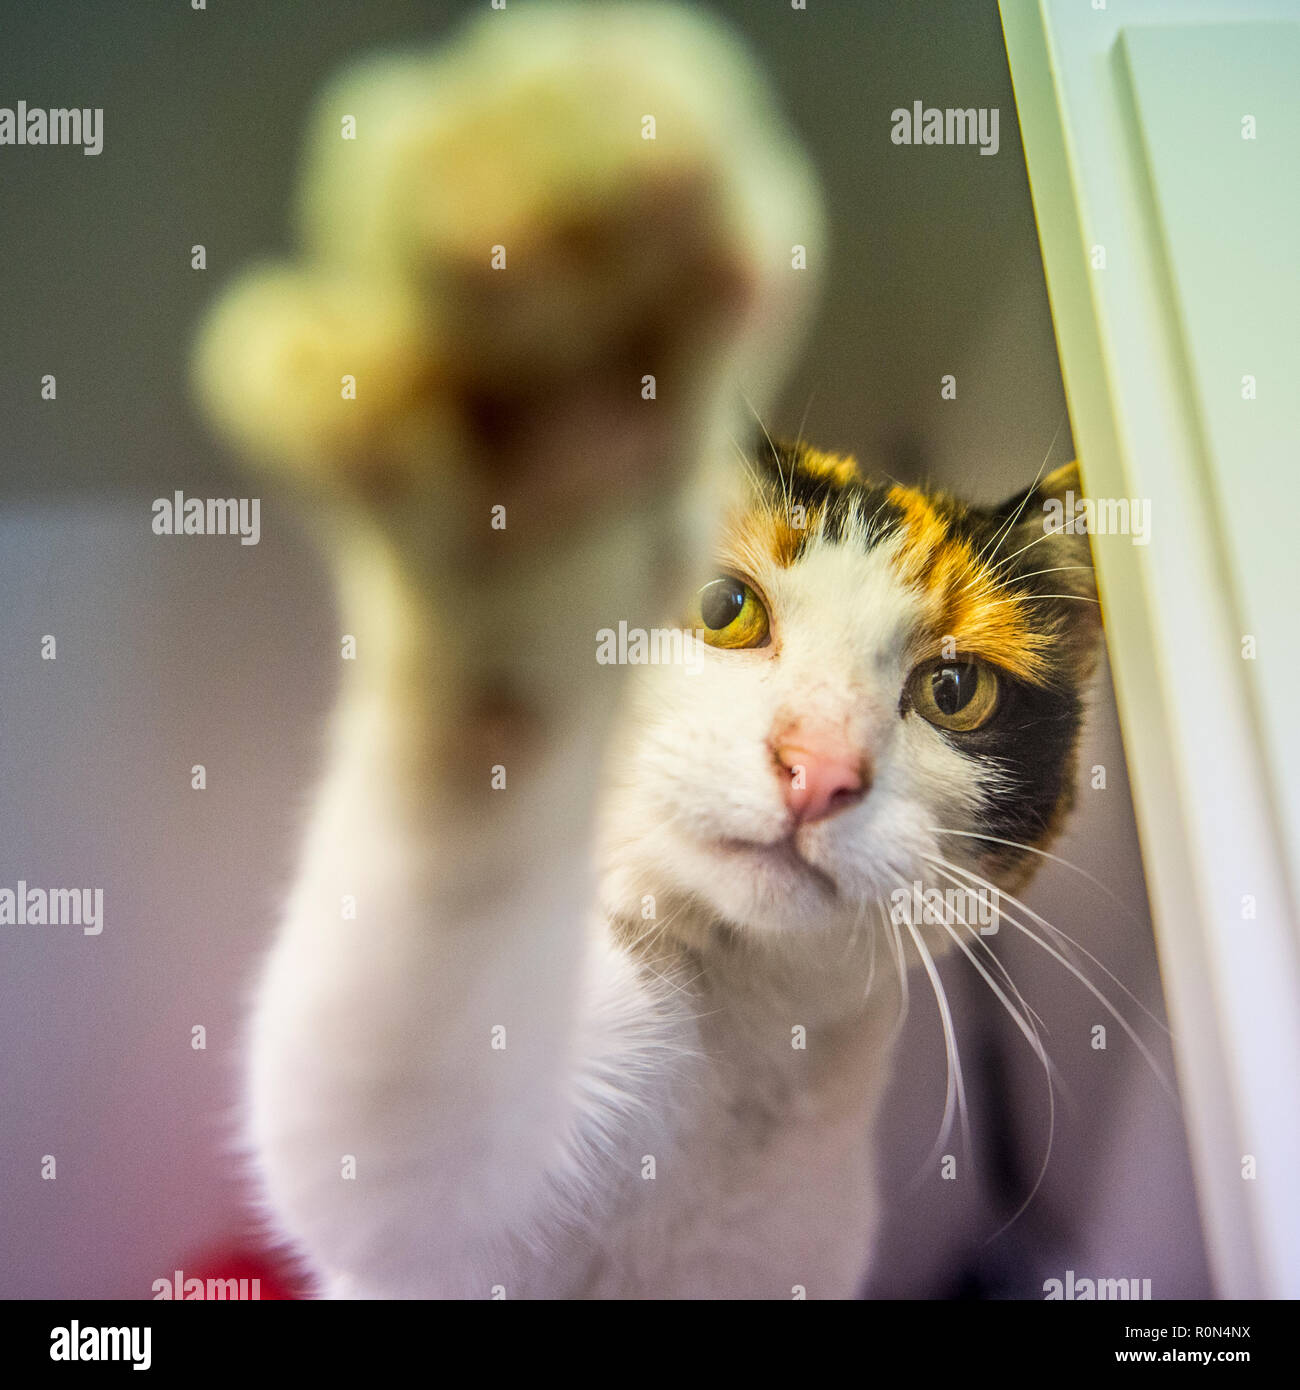 cat attacking photographer - Stock Image